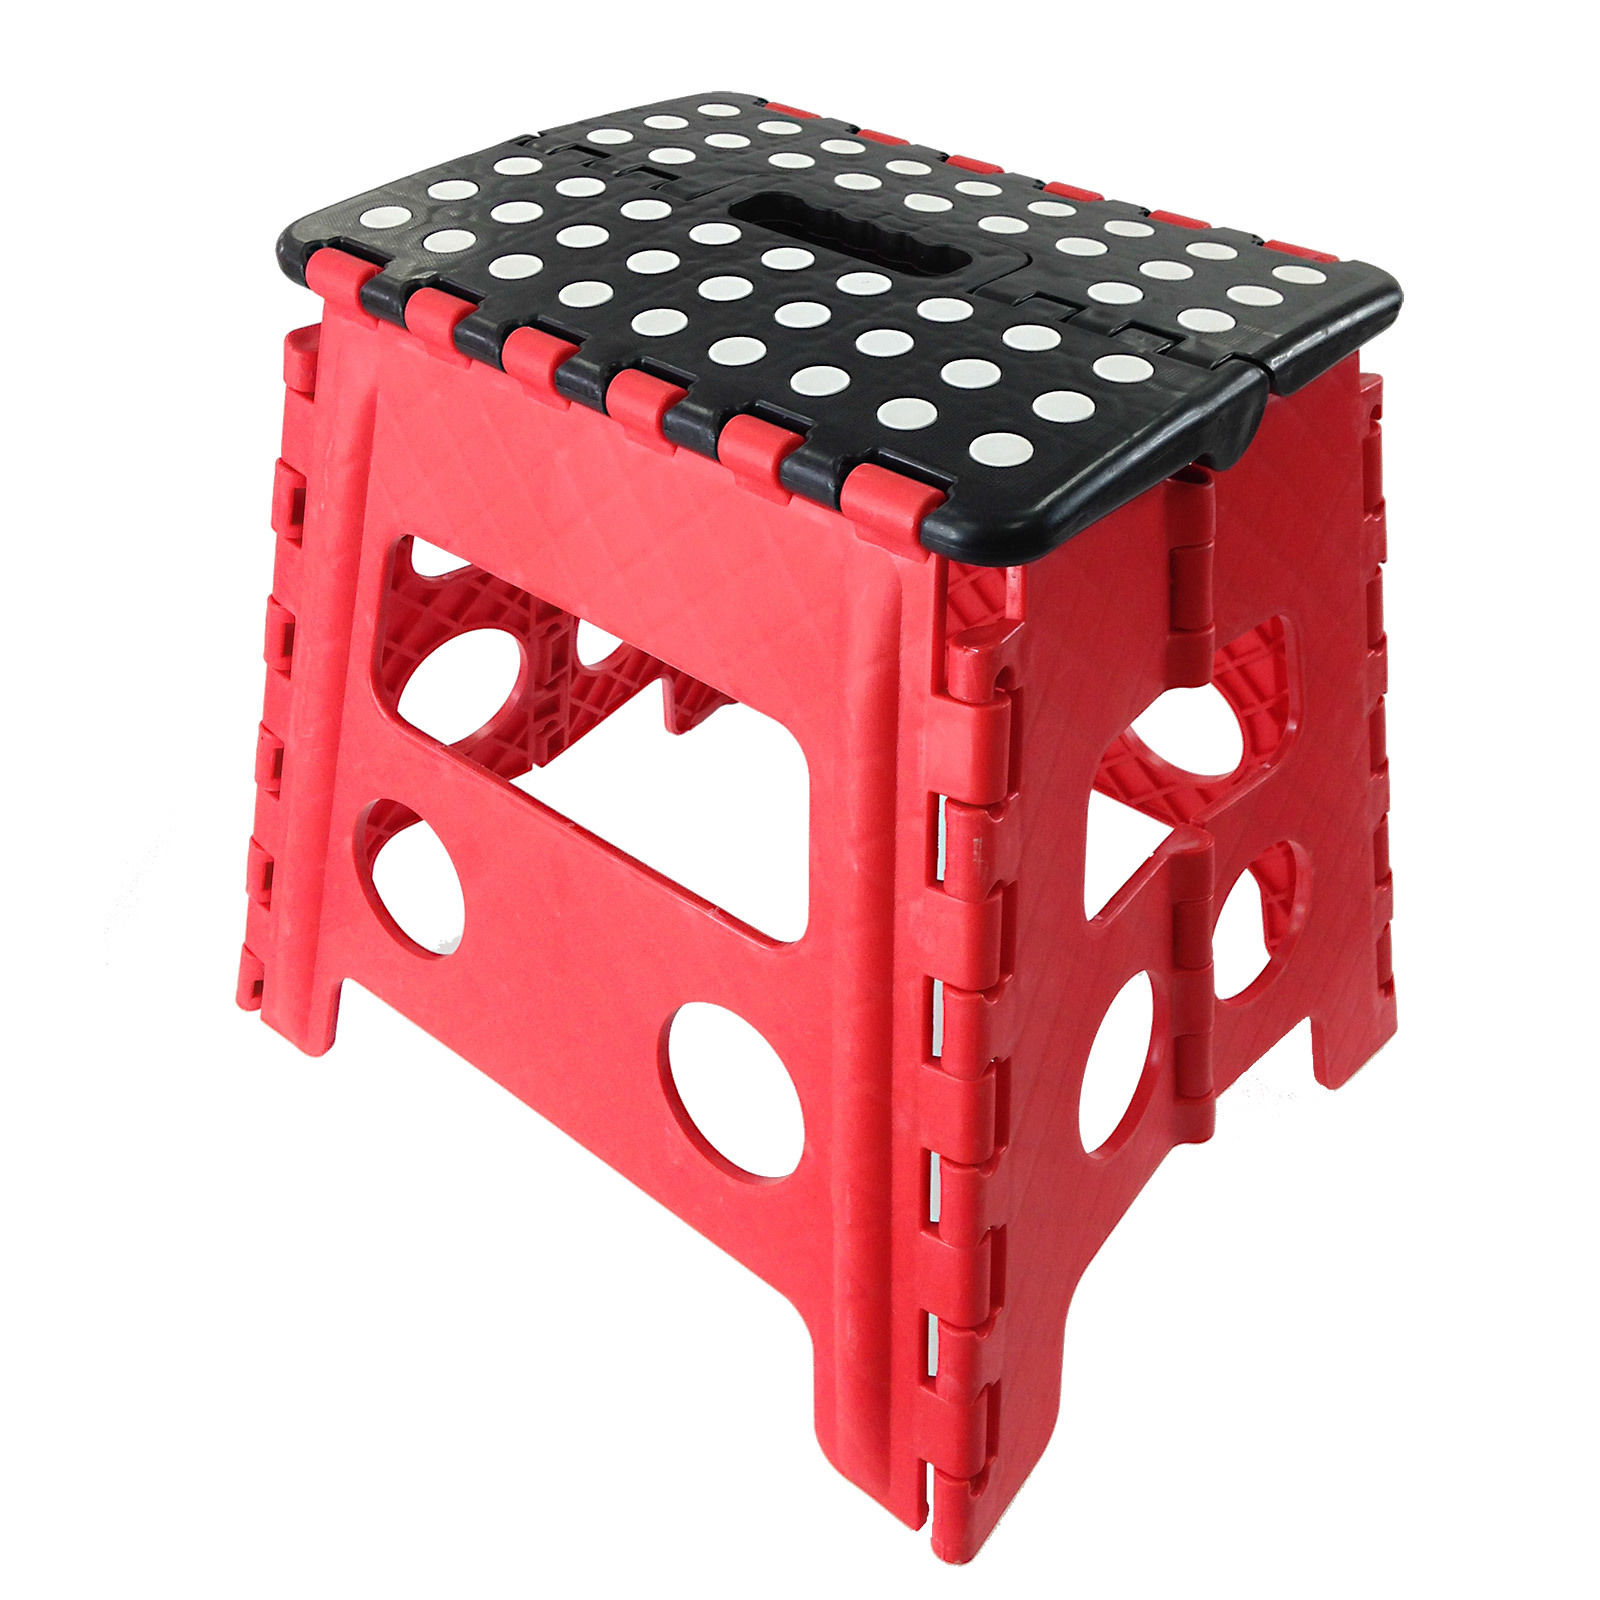 Easy Carry Folding Step Stool / Seat With Anti-Slip Surface Kids / Home - Red  sc 1 st  Easy Source Inc. : large folding step stool - islam-shia.org